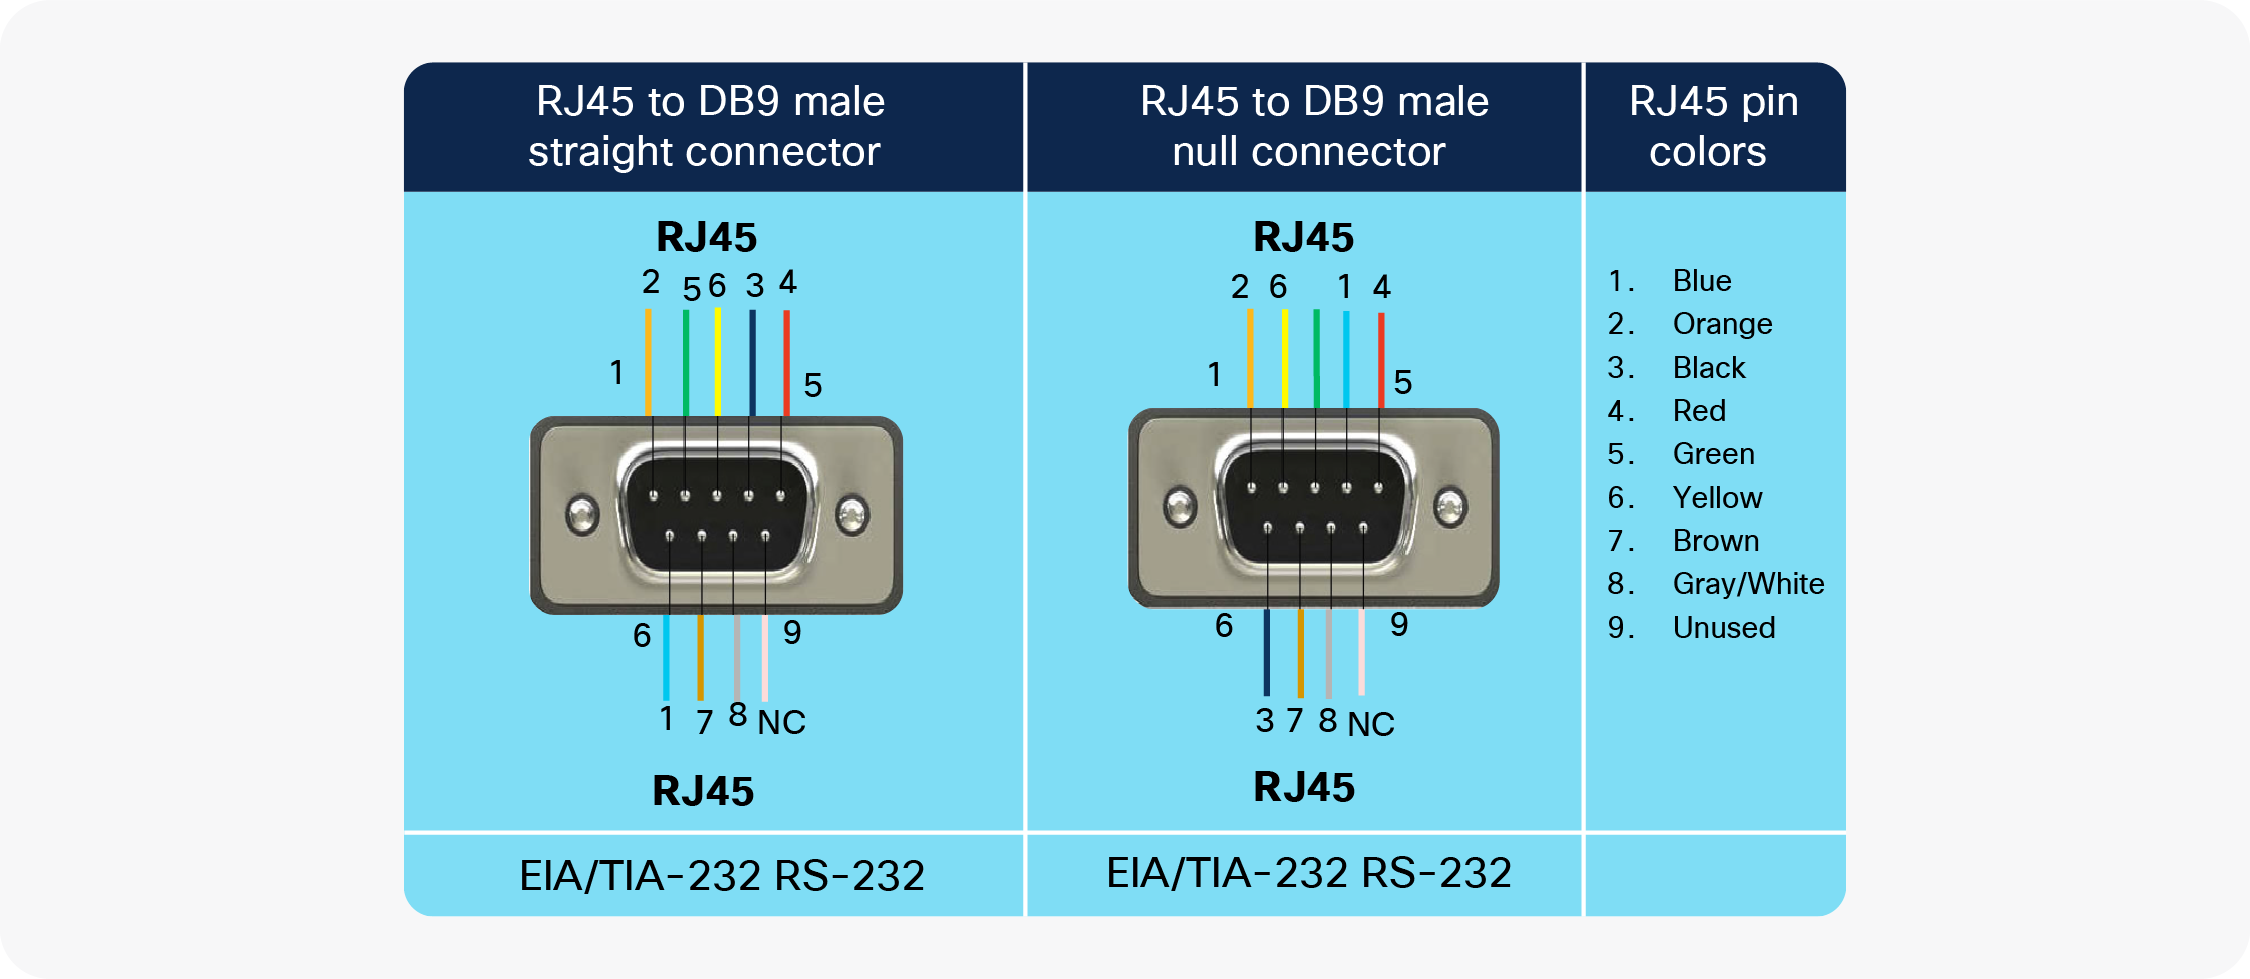 Pinouts for RJ45 to DB9 male adapters